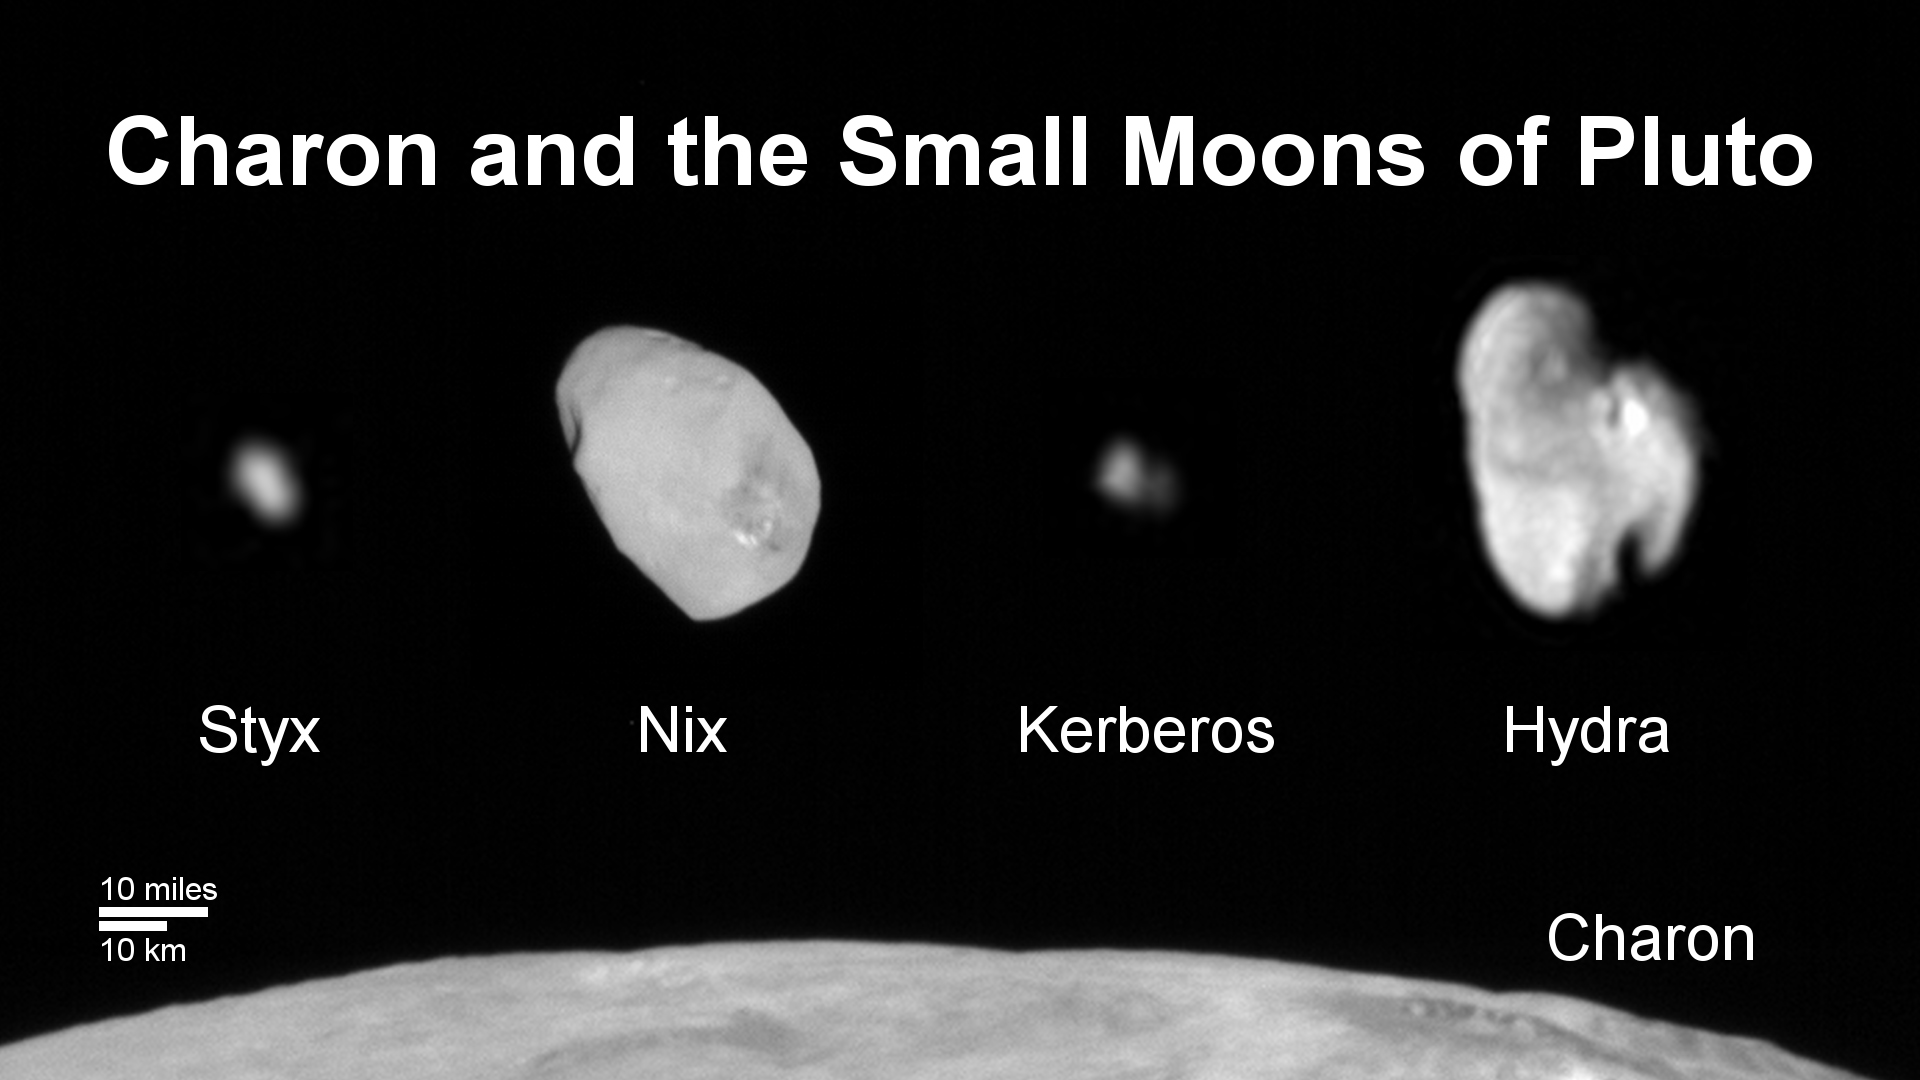 Kerberos Moon Of Plluto: Why Are Pluto's Moons So Weird?